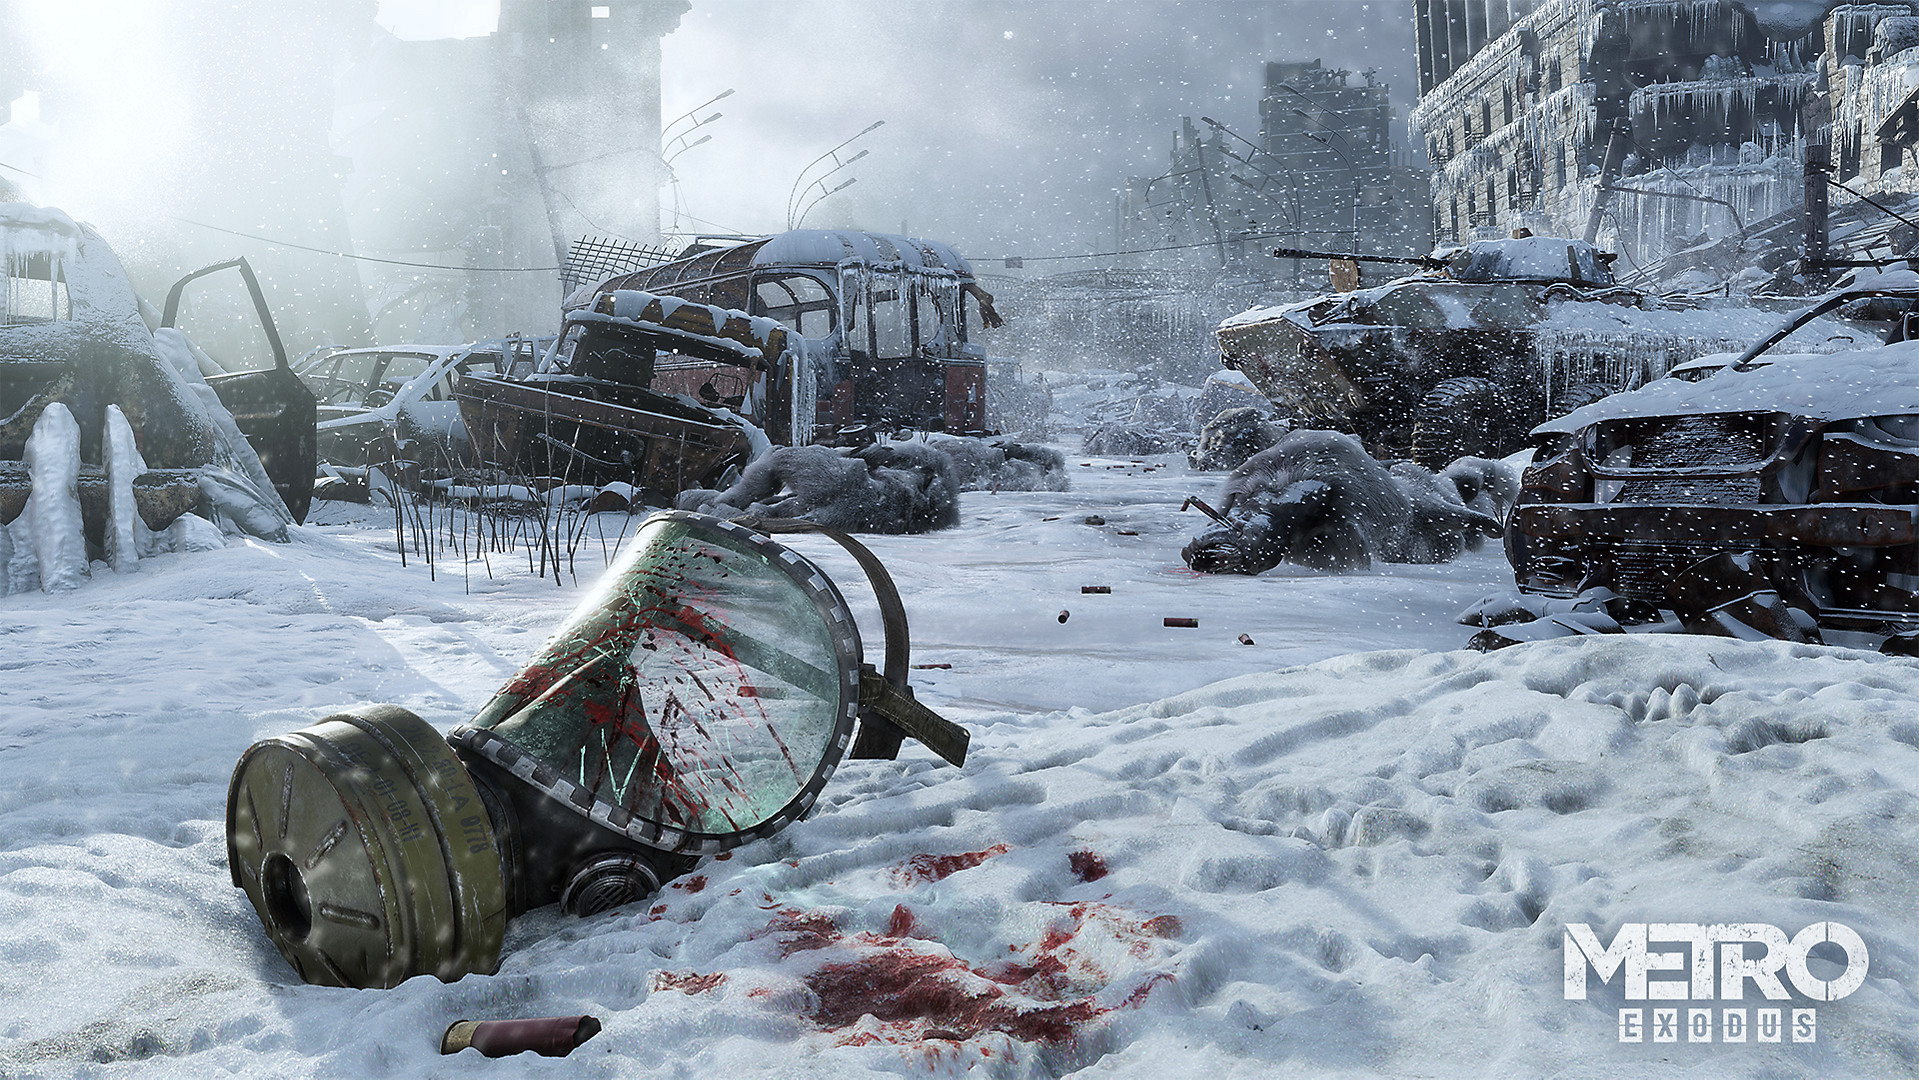 metro-exodus-screen-01-ps4-us-25jan18?$n